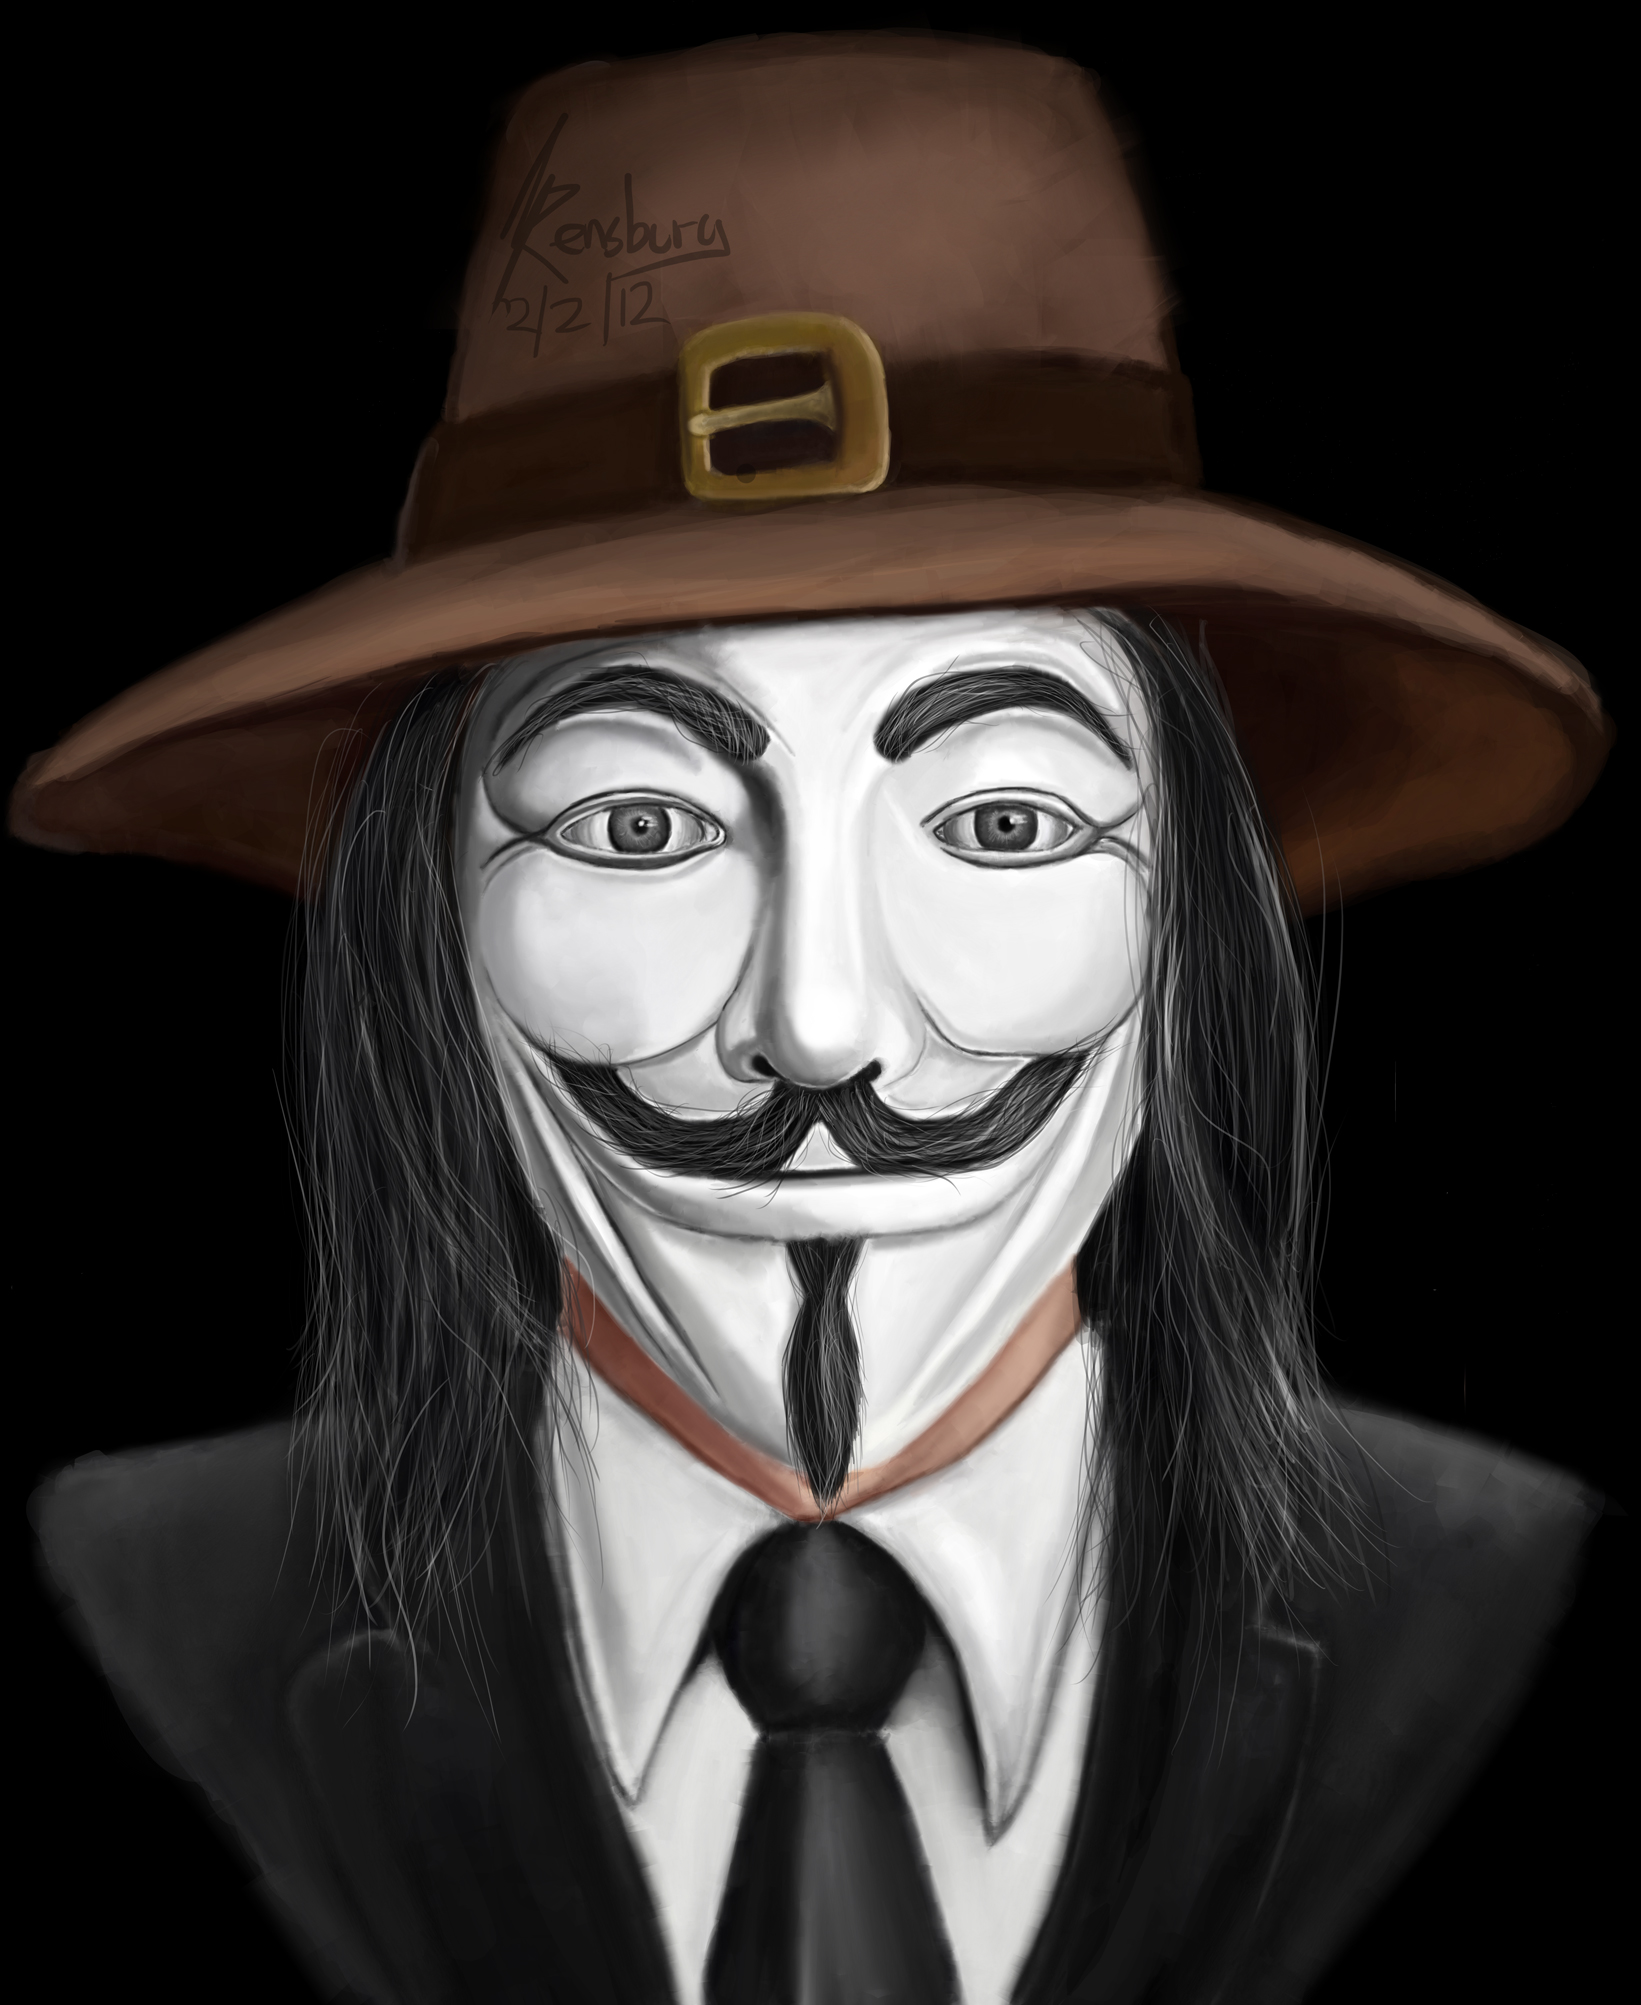 guy fawkes meets anonymous